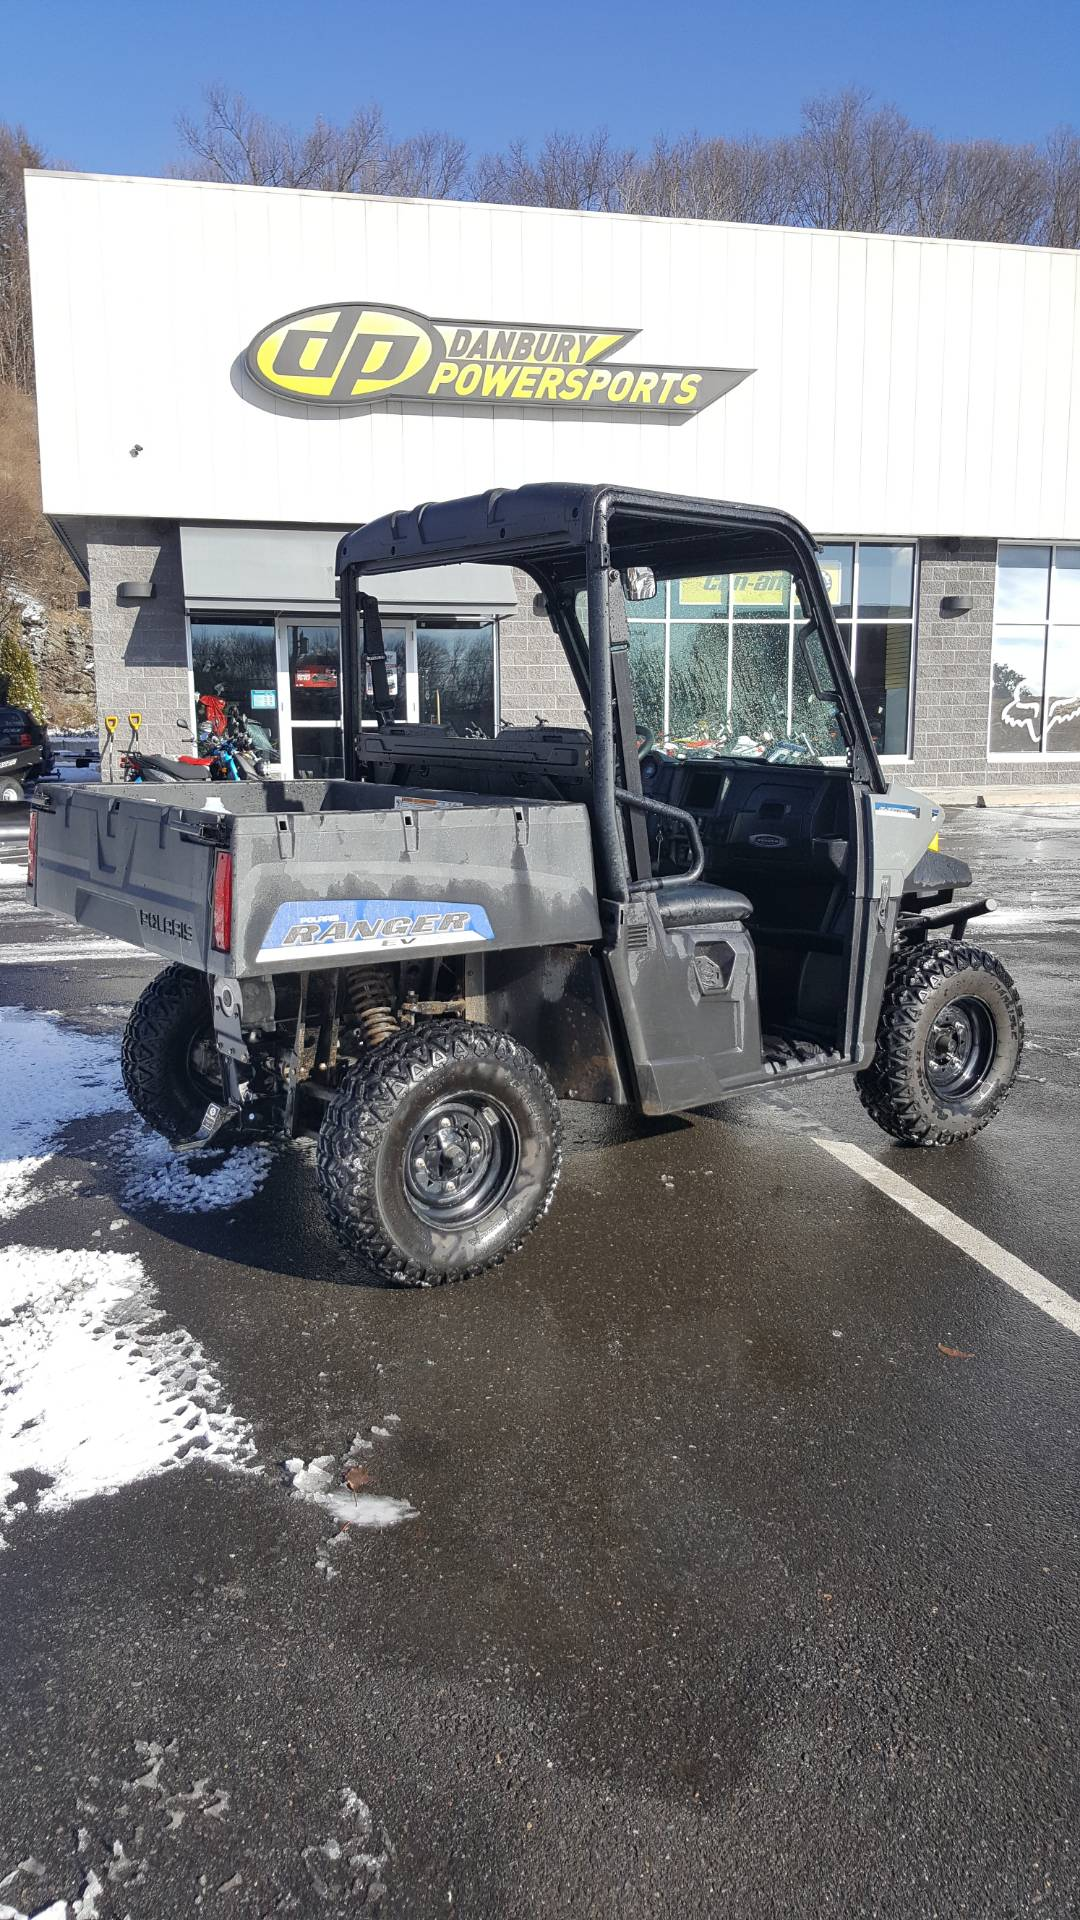 2016 Polaris Ranger EV in Danbury, Connecticut